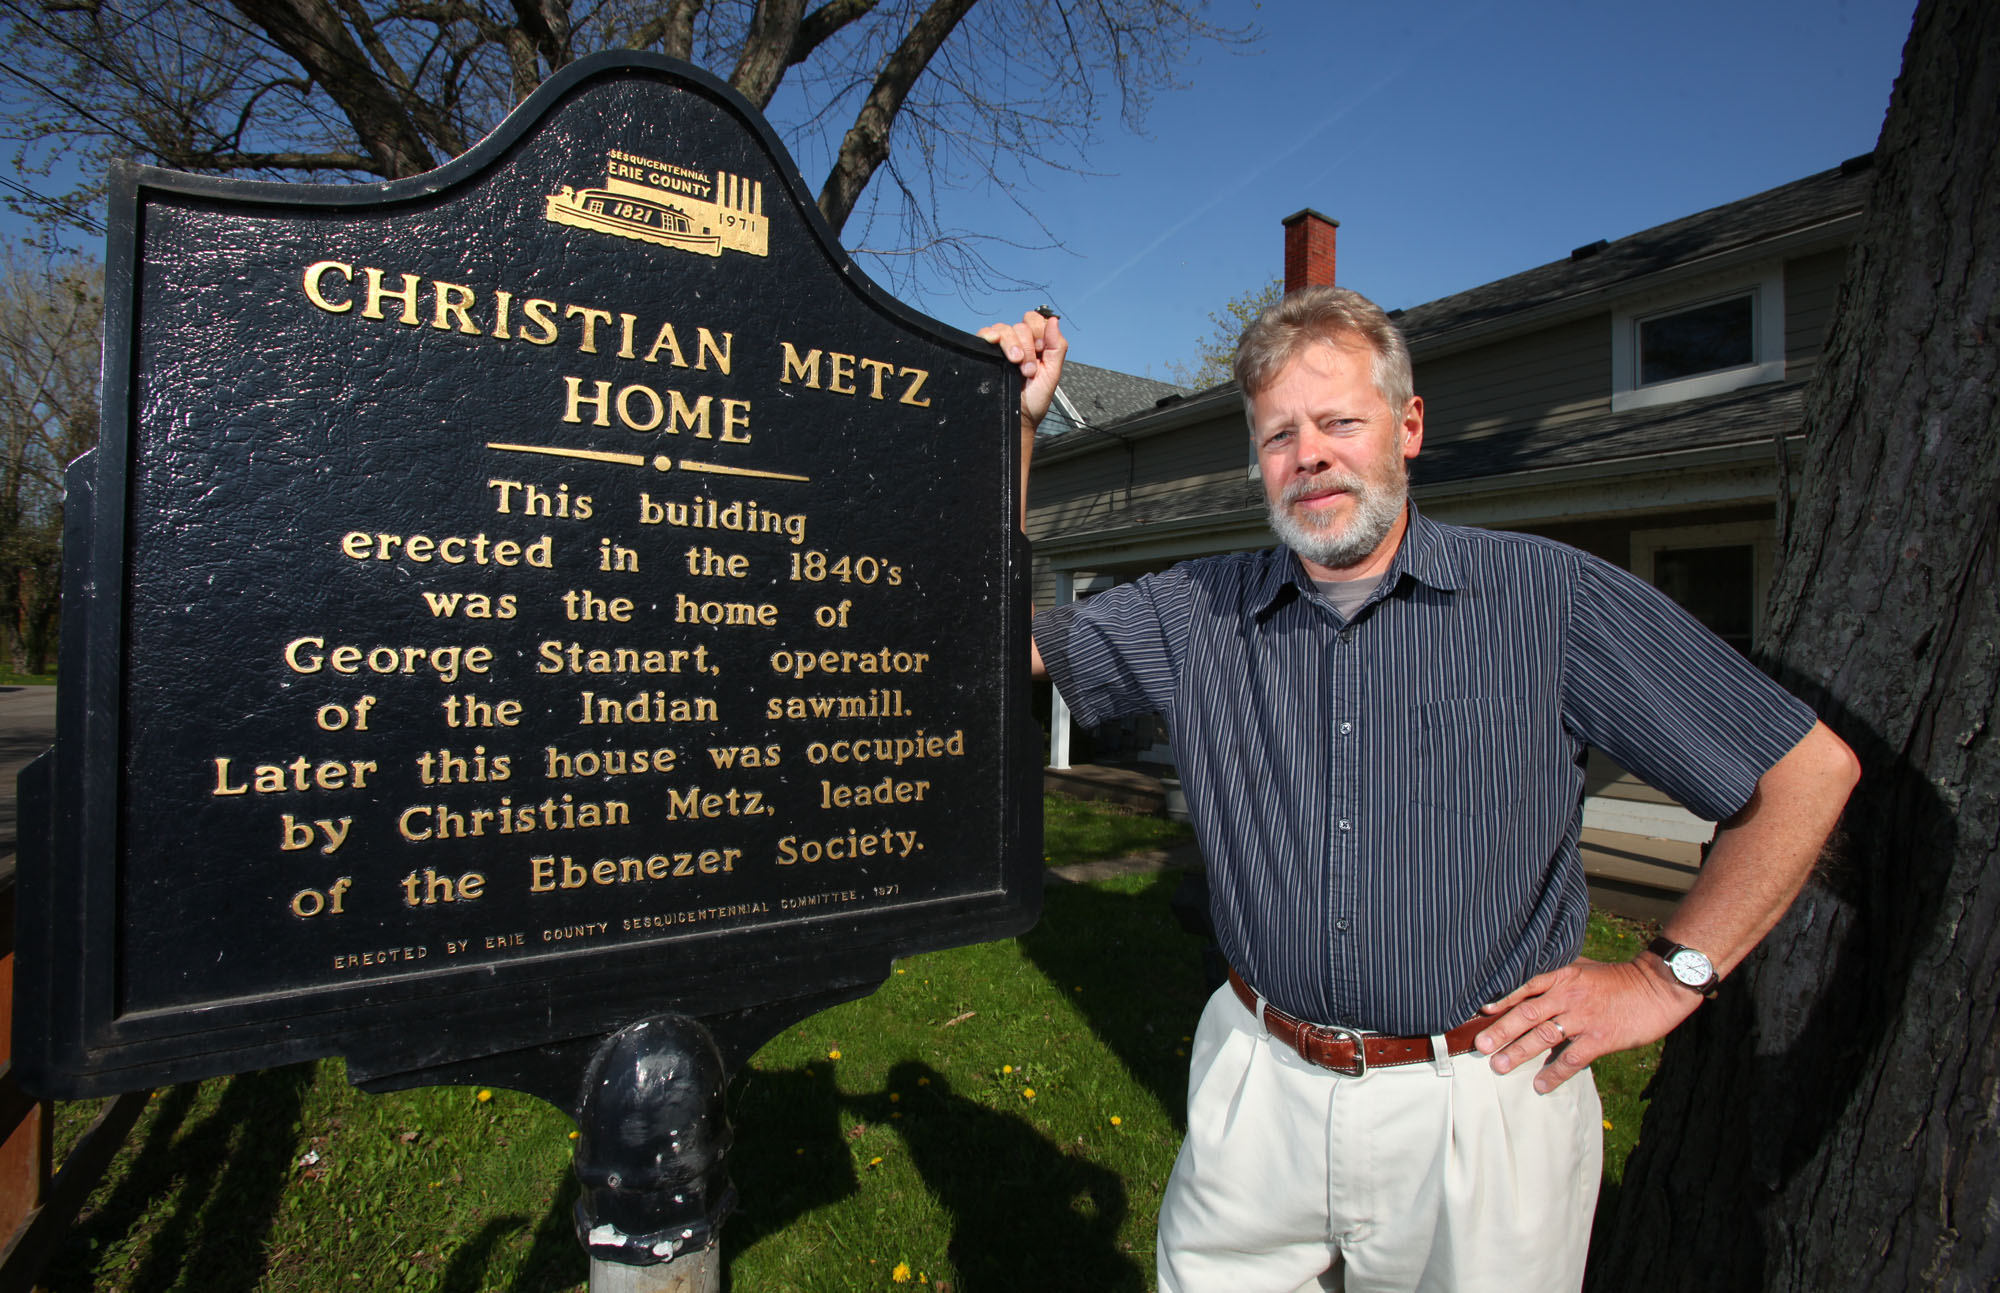 Town Historian James C. Pace is pictured at the   historic Christian Metz house in this file photo. (Harry Scull Jr. / Buffalo News)